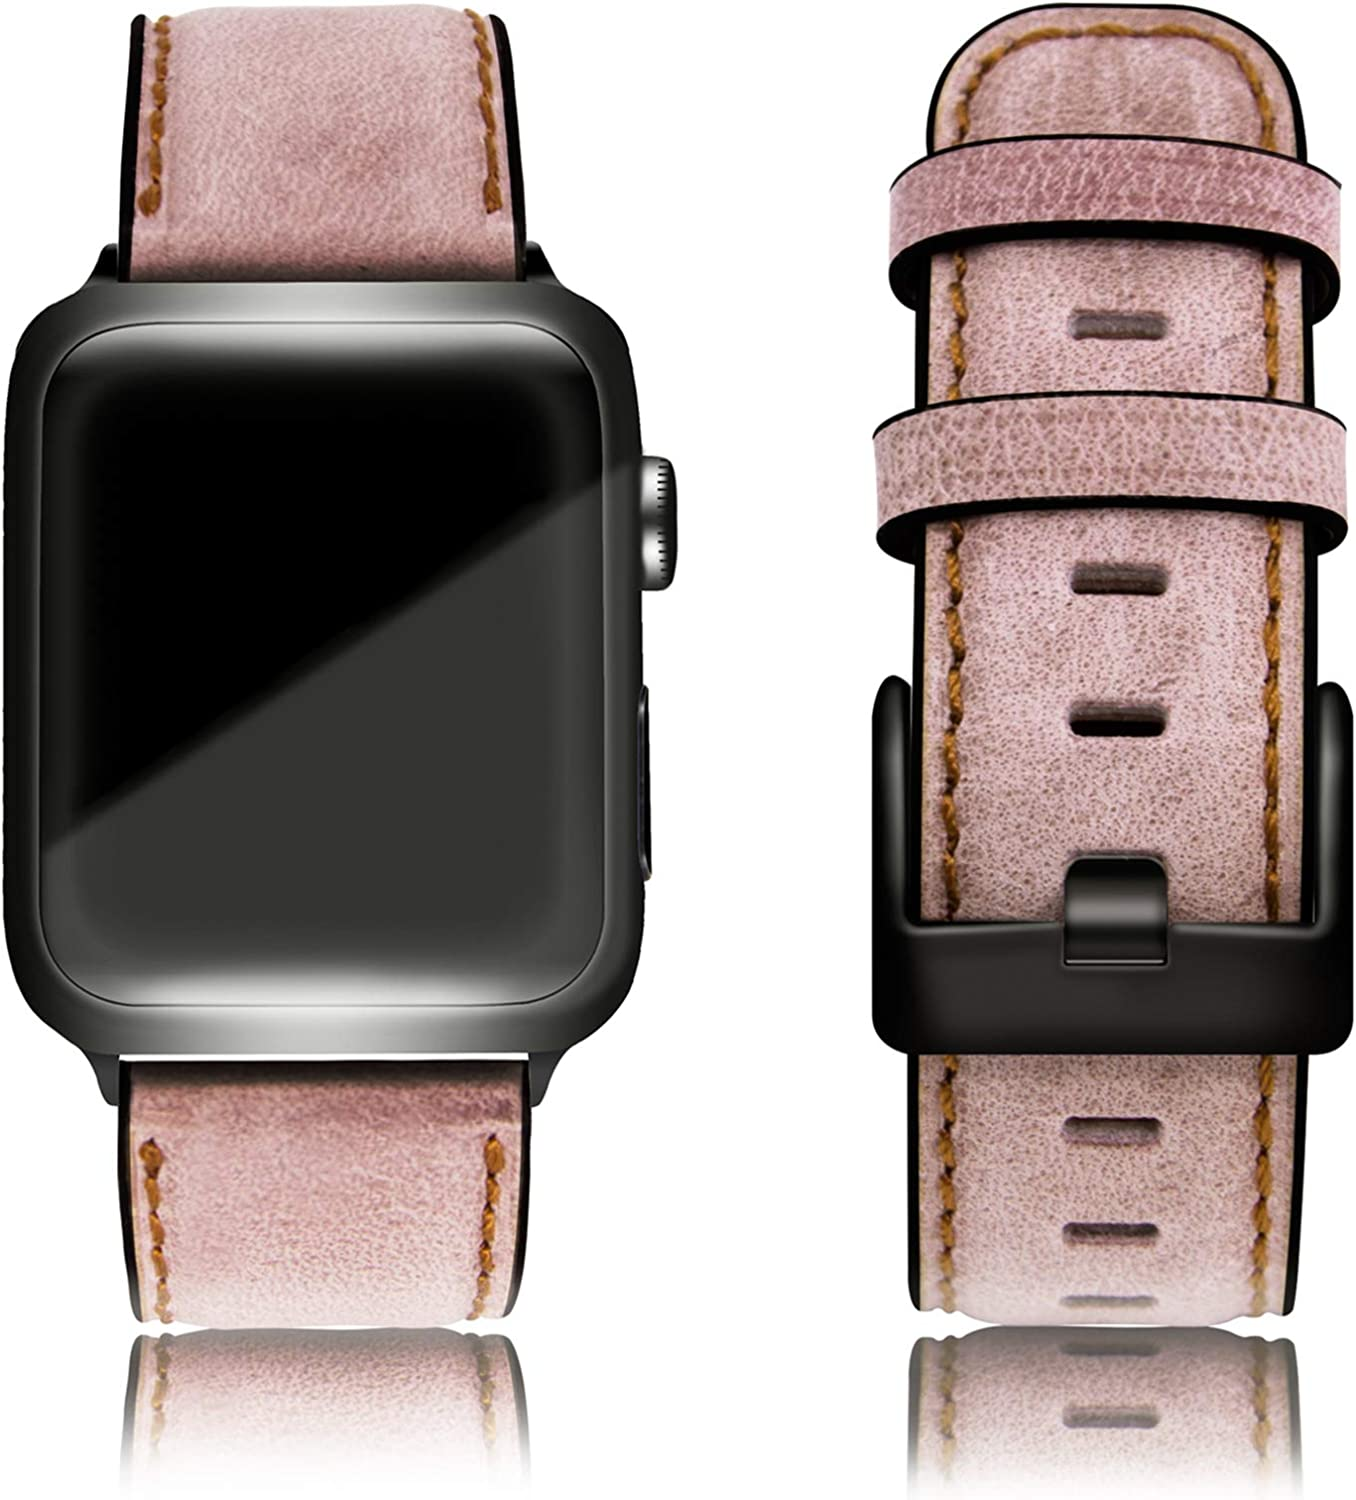 Lifendear Replacement for Vintage Leather Band Compatible with Apple iWatch Series 6/SE/5/4/3/2/1 38mm 40mm 42mm 44mm Retro & Vintage Double Head Layer Cowhide Soft & Comfort Men Women Top Grain Genuine Leather Band Replacement